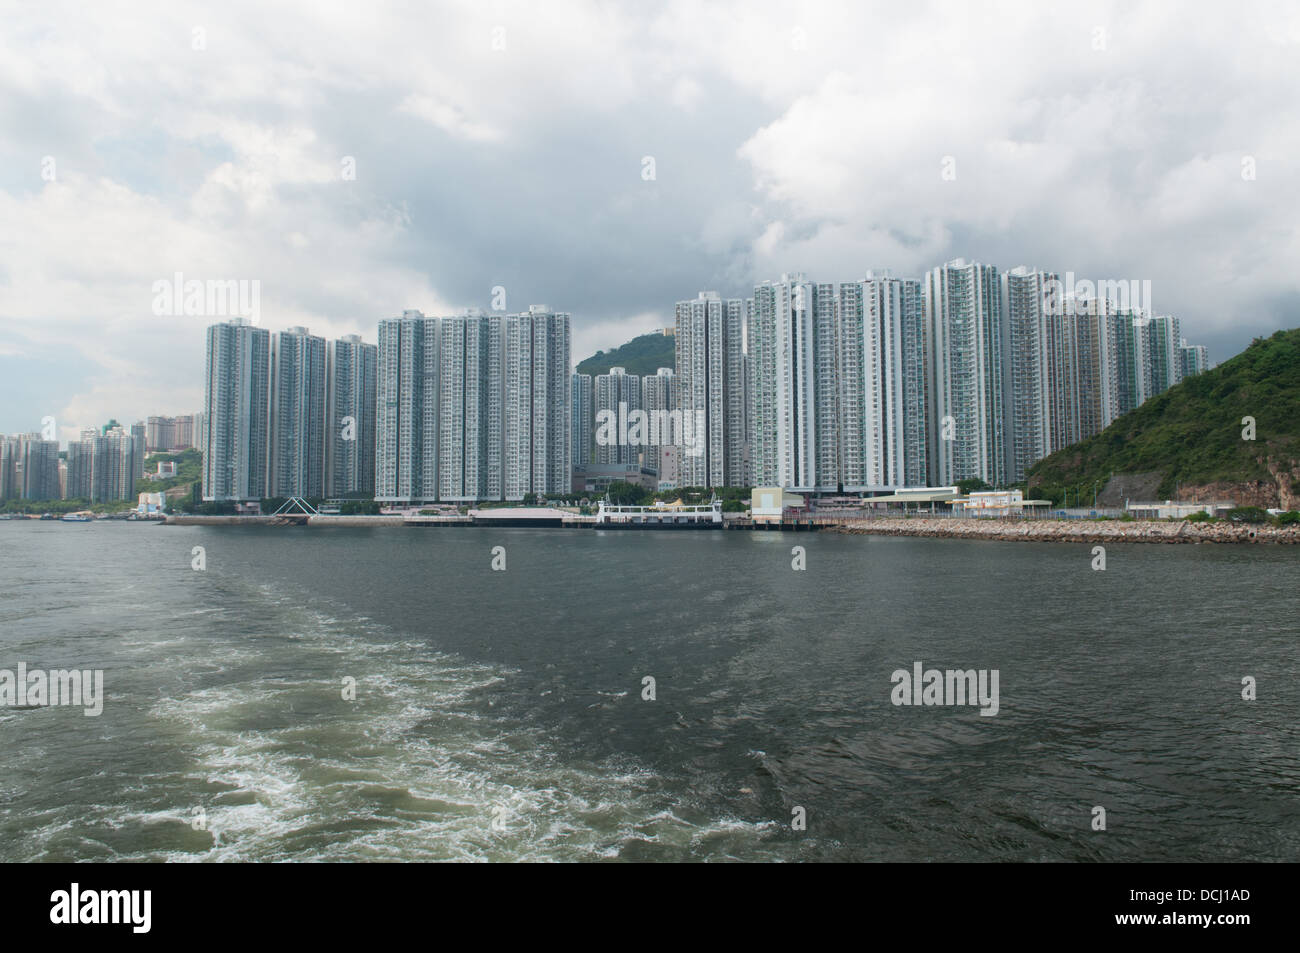 Hong Kong tower blocks, Aberdeen, Hong Kong. - Stock Image